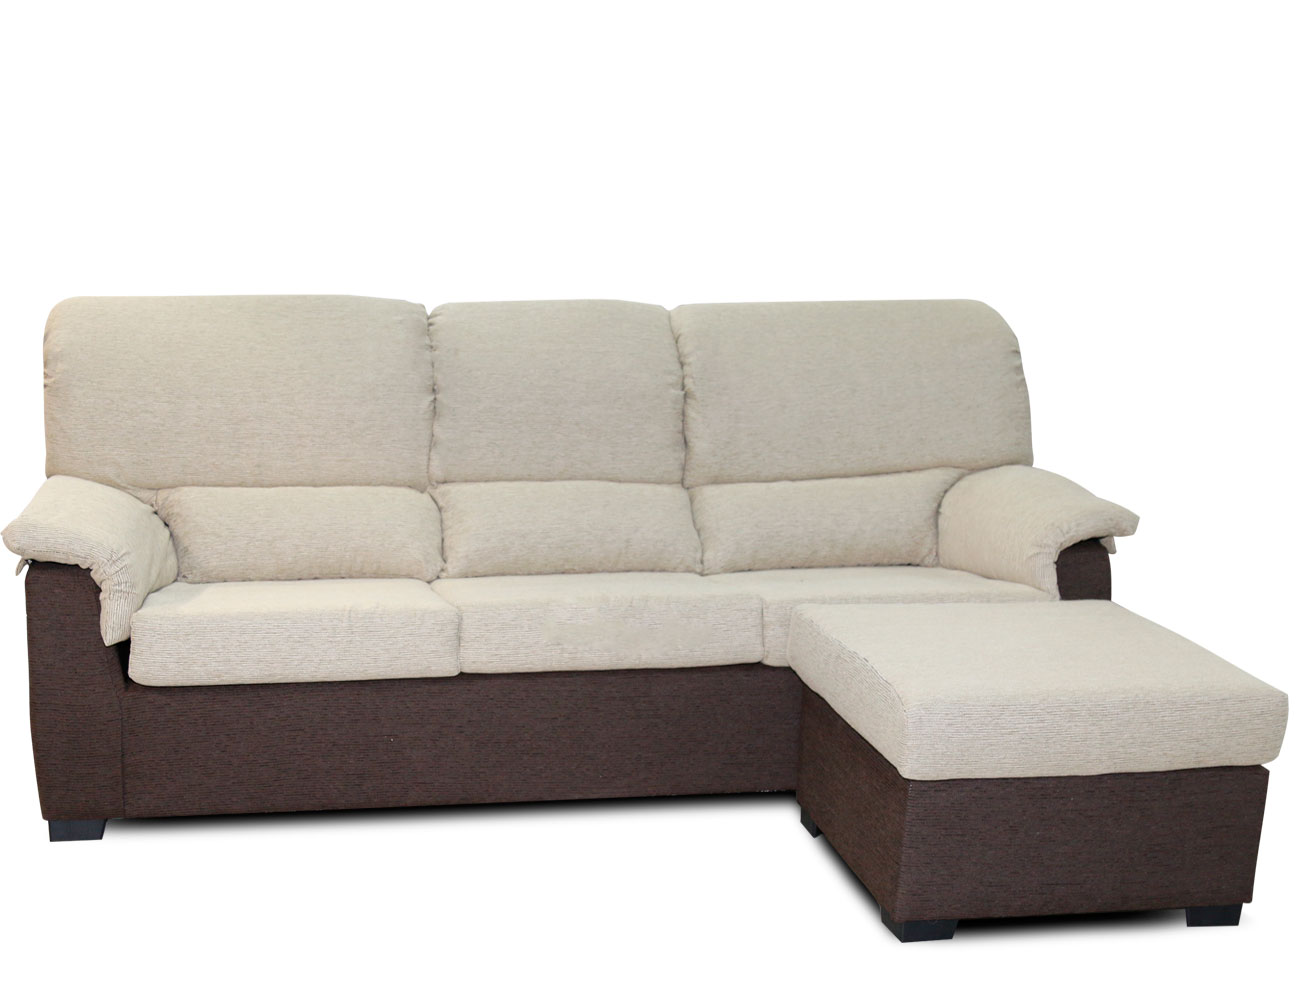 Sof Chaiselongue Barato Con Puf Reversible 15285